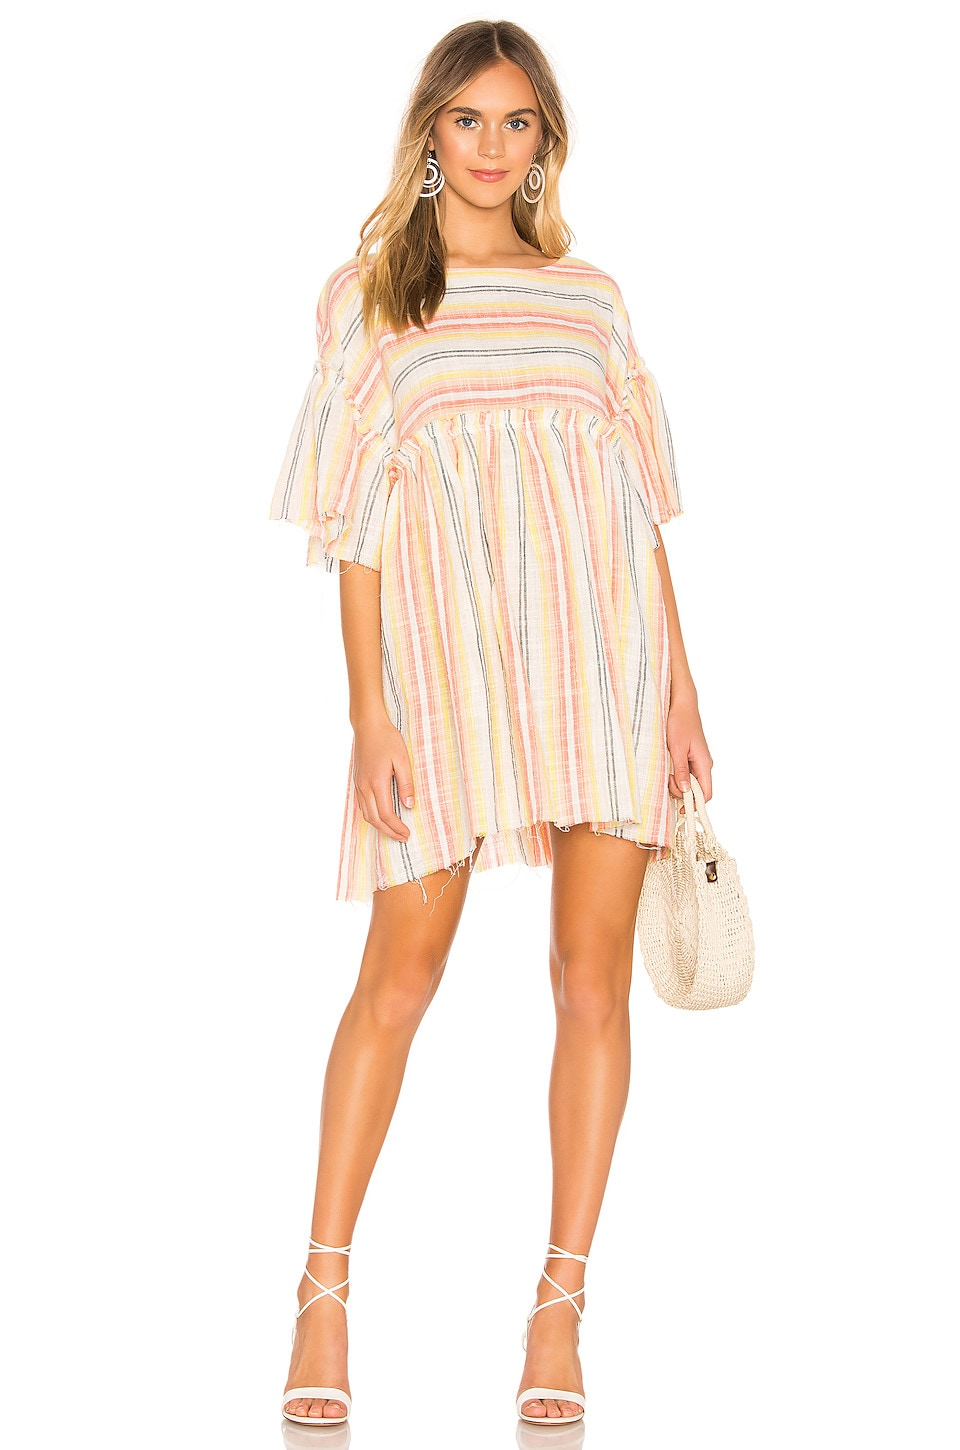 Free People Summer Nights Striped Dress in Yellow